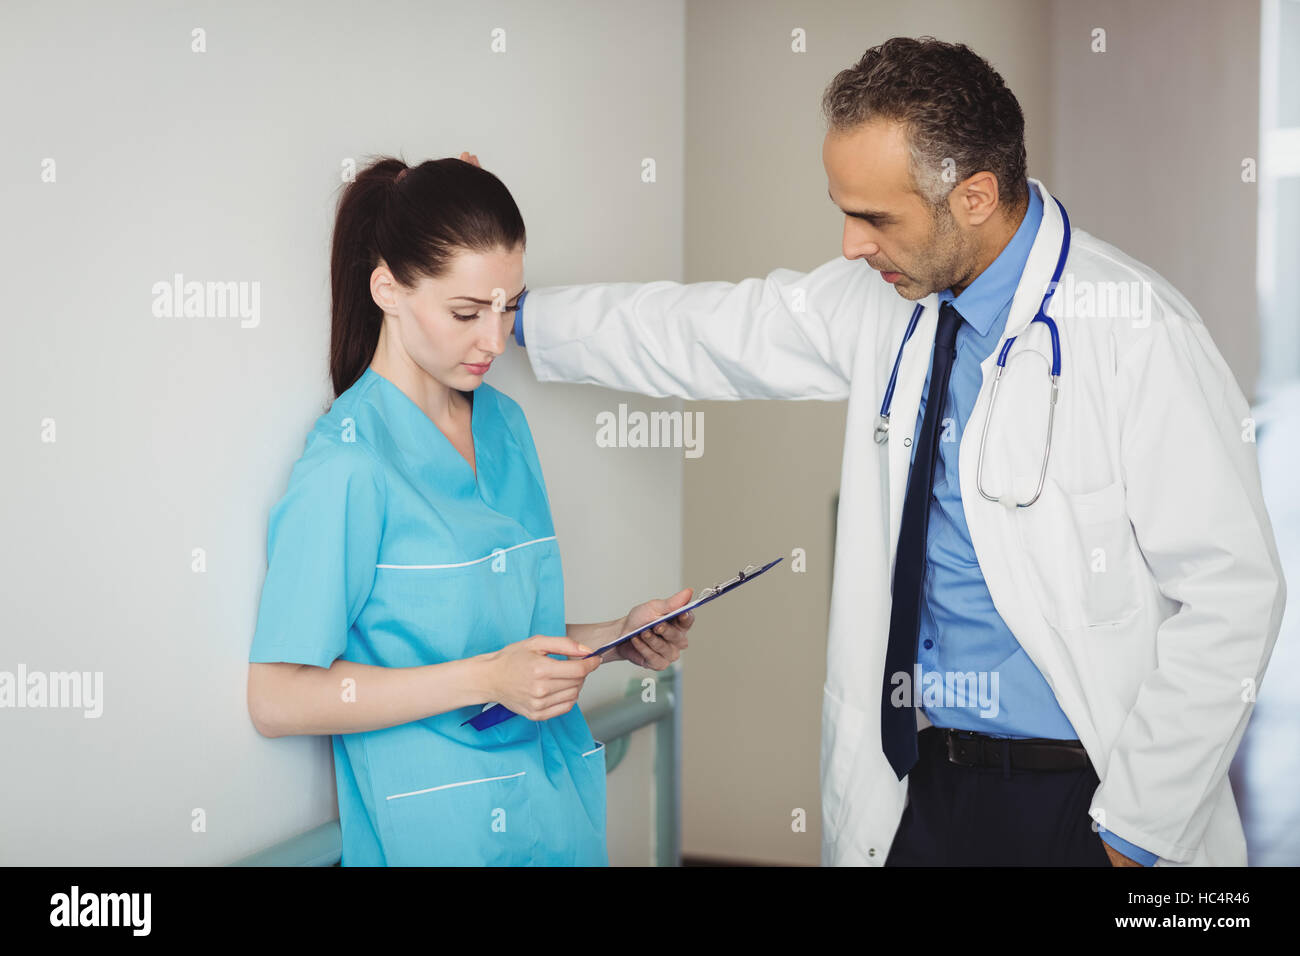 Doctor interacting with nurse - Stock Image